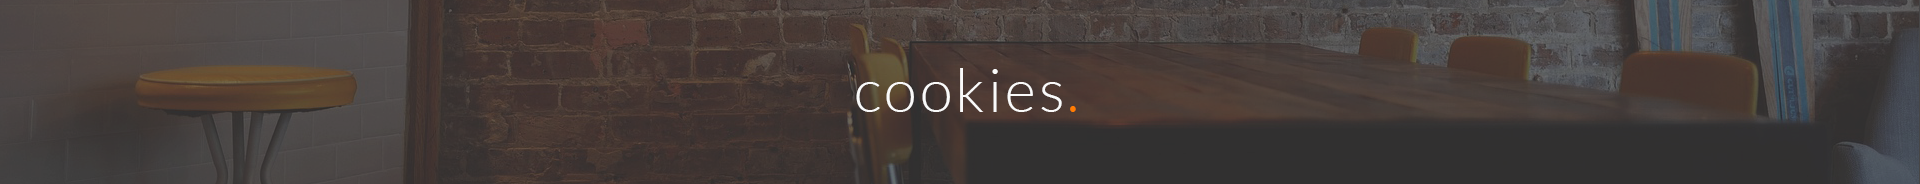 banner-cookies.png